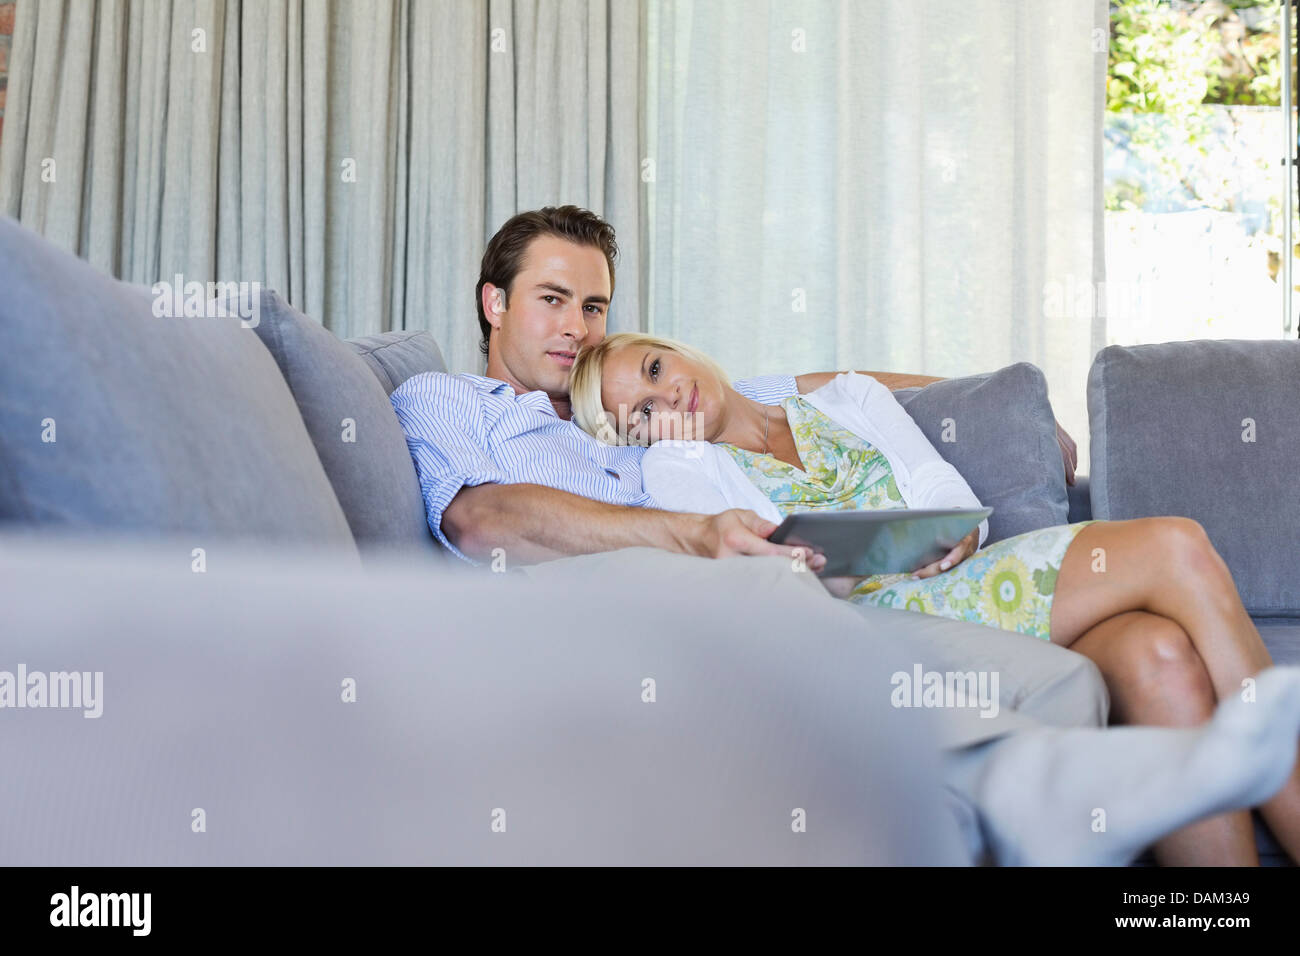 Couple relaxing on sofa together - Stock Image